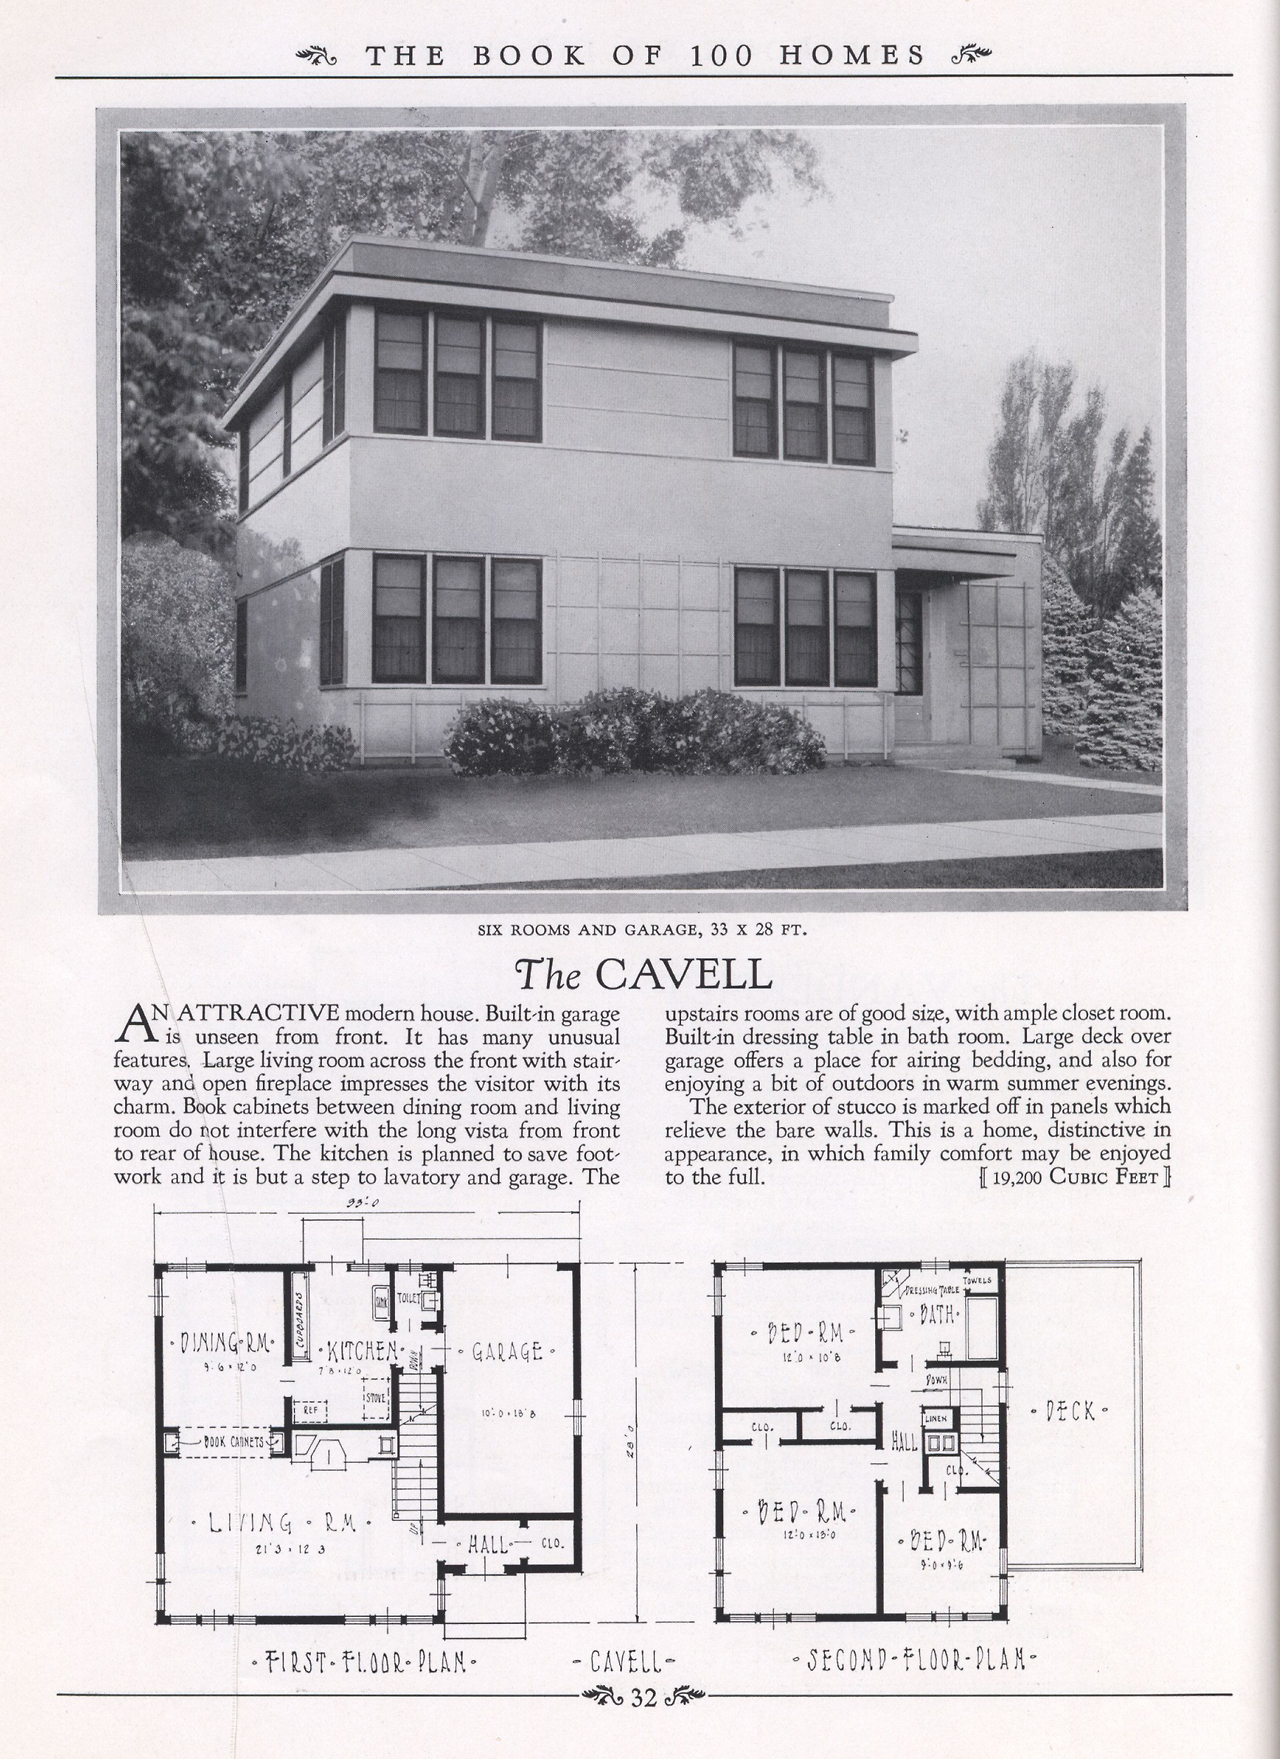 United States 1937 The Cavell This Modernized Version Of The Classic Foursquare Home Has Corner Windows And A Rea House Plans Vintage House Plans Roman House